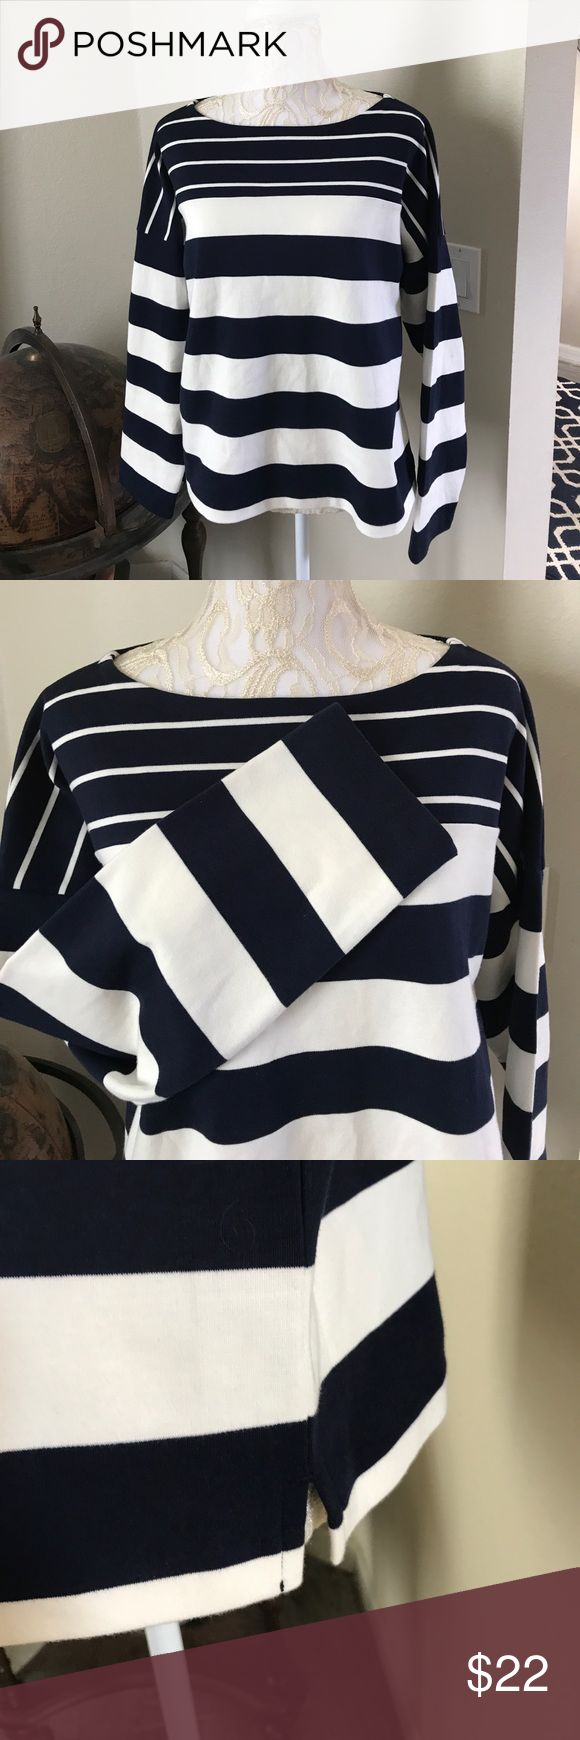 Boat Neck J. Crew Nautical Stripe Shirt This beautiful, warm shirt is perfect as a cover up for your bikini or paired with jean shorts or bermudas! Beautiful cream and navy variegated horizontal strips with straight cut sleeves and bottom. Worn once! From a smoke free home. 🍷 J. Crew Tops Sweatshirts & Hoodies